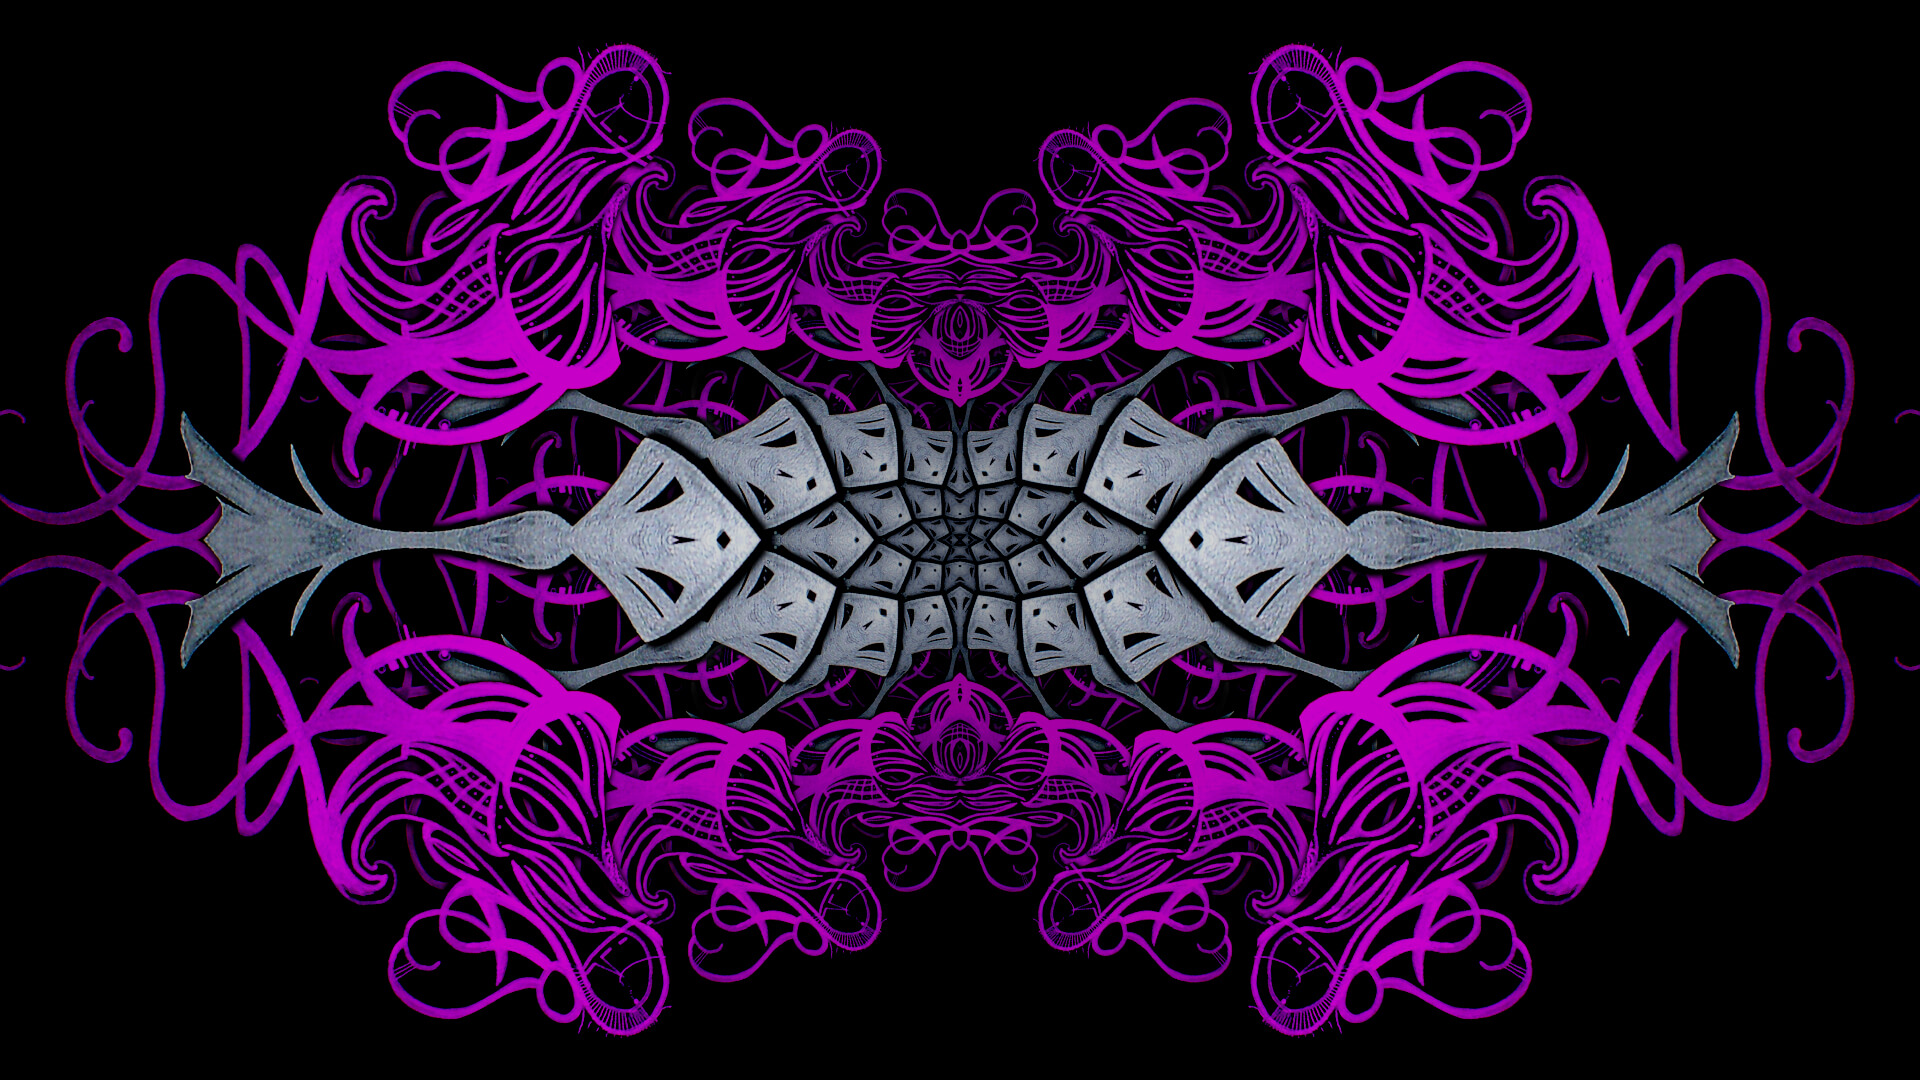 Accross my eyes forever - digital abstract art by Mitek